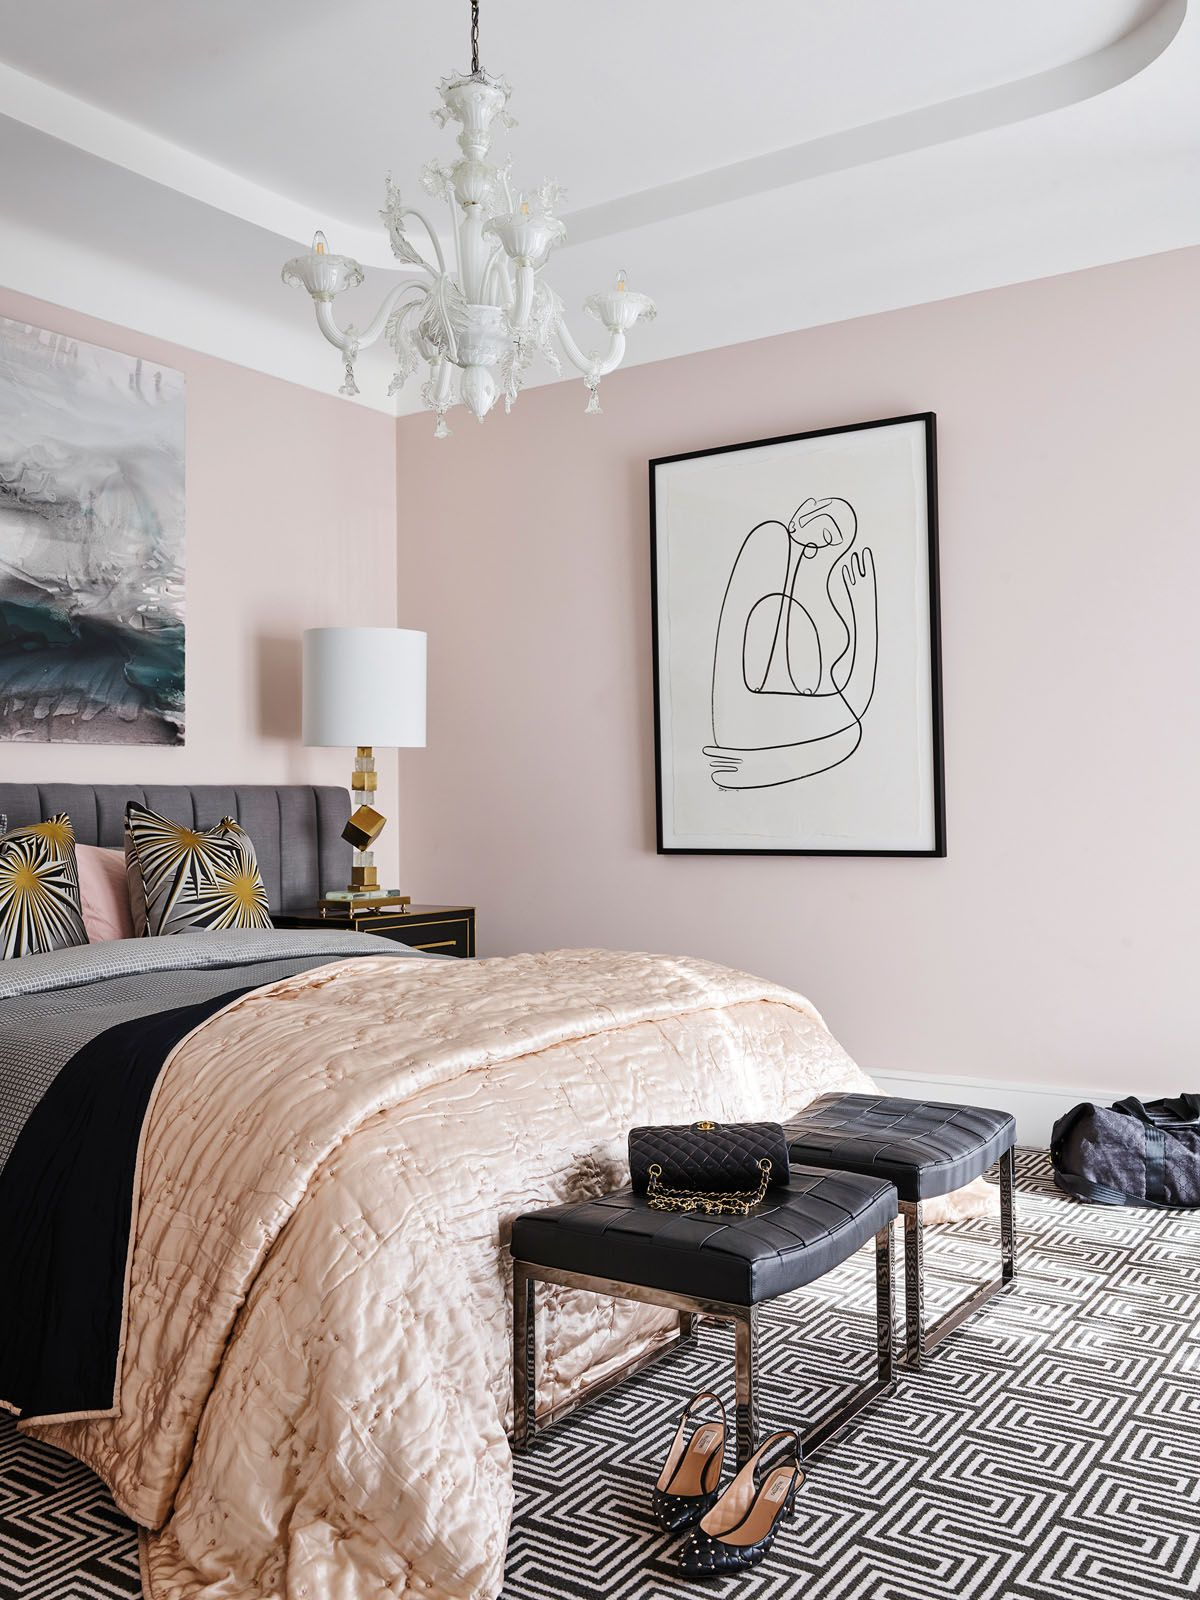 The vintage Murano glass chandelier in the bedroom is a whimsical touch